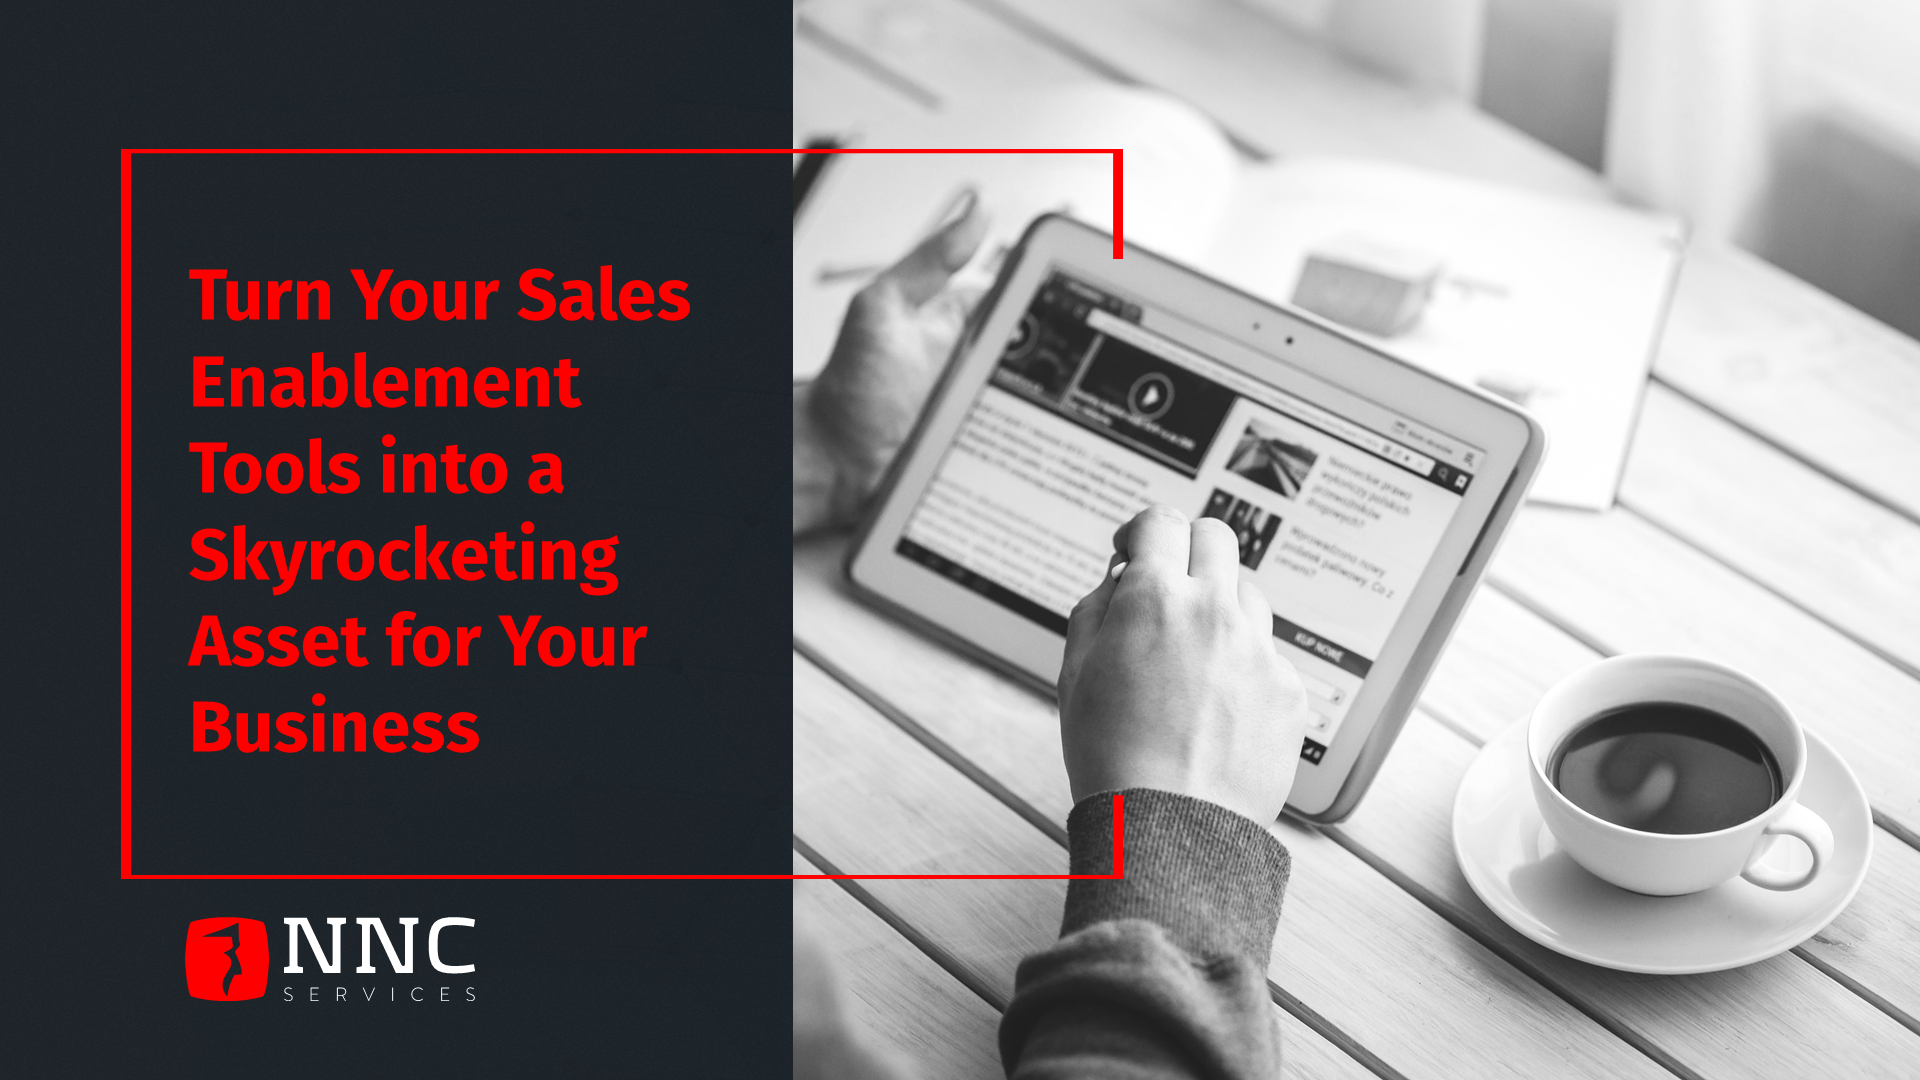 NNC Services Sales Enablement